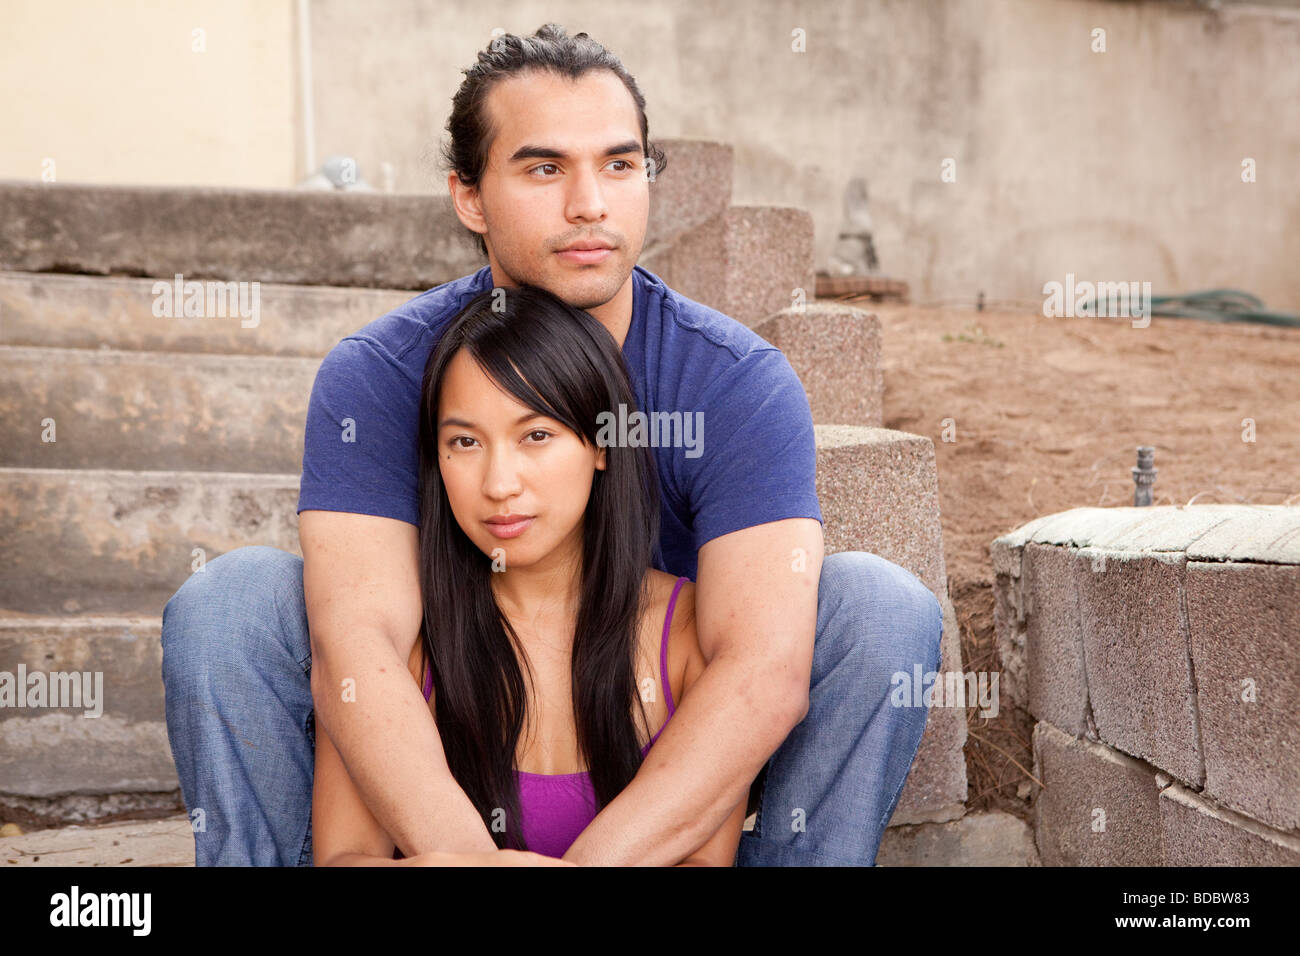 Male and female couple sitting on concrete steps, his arms are around her.  Looking at camera.  Woman is Filipino. - Stock Image